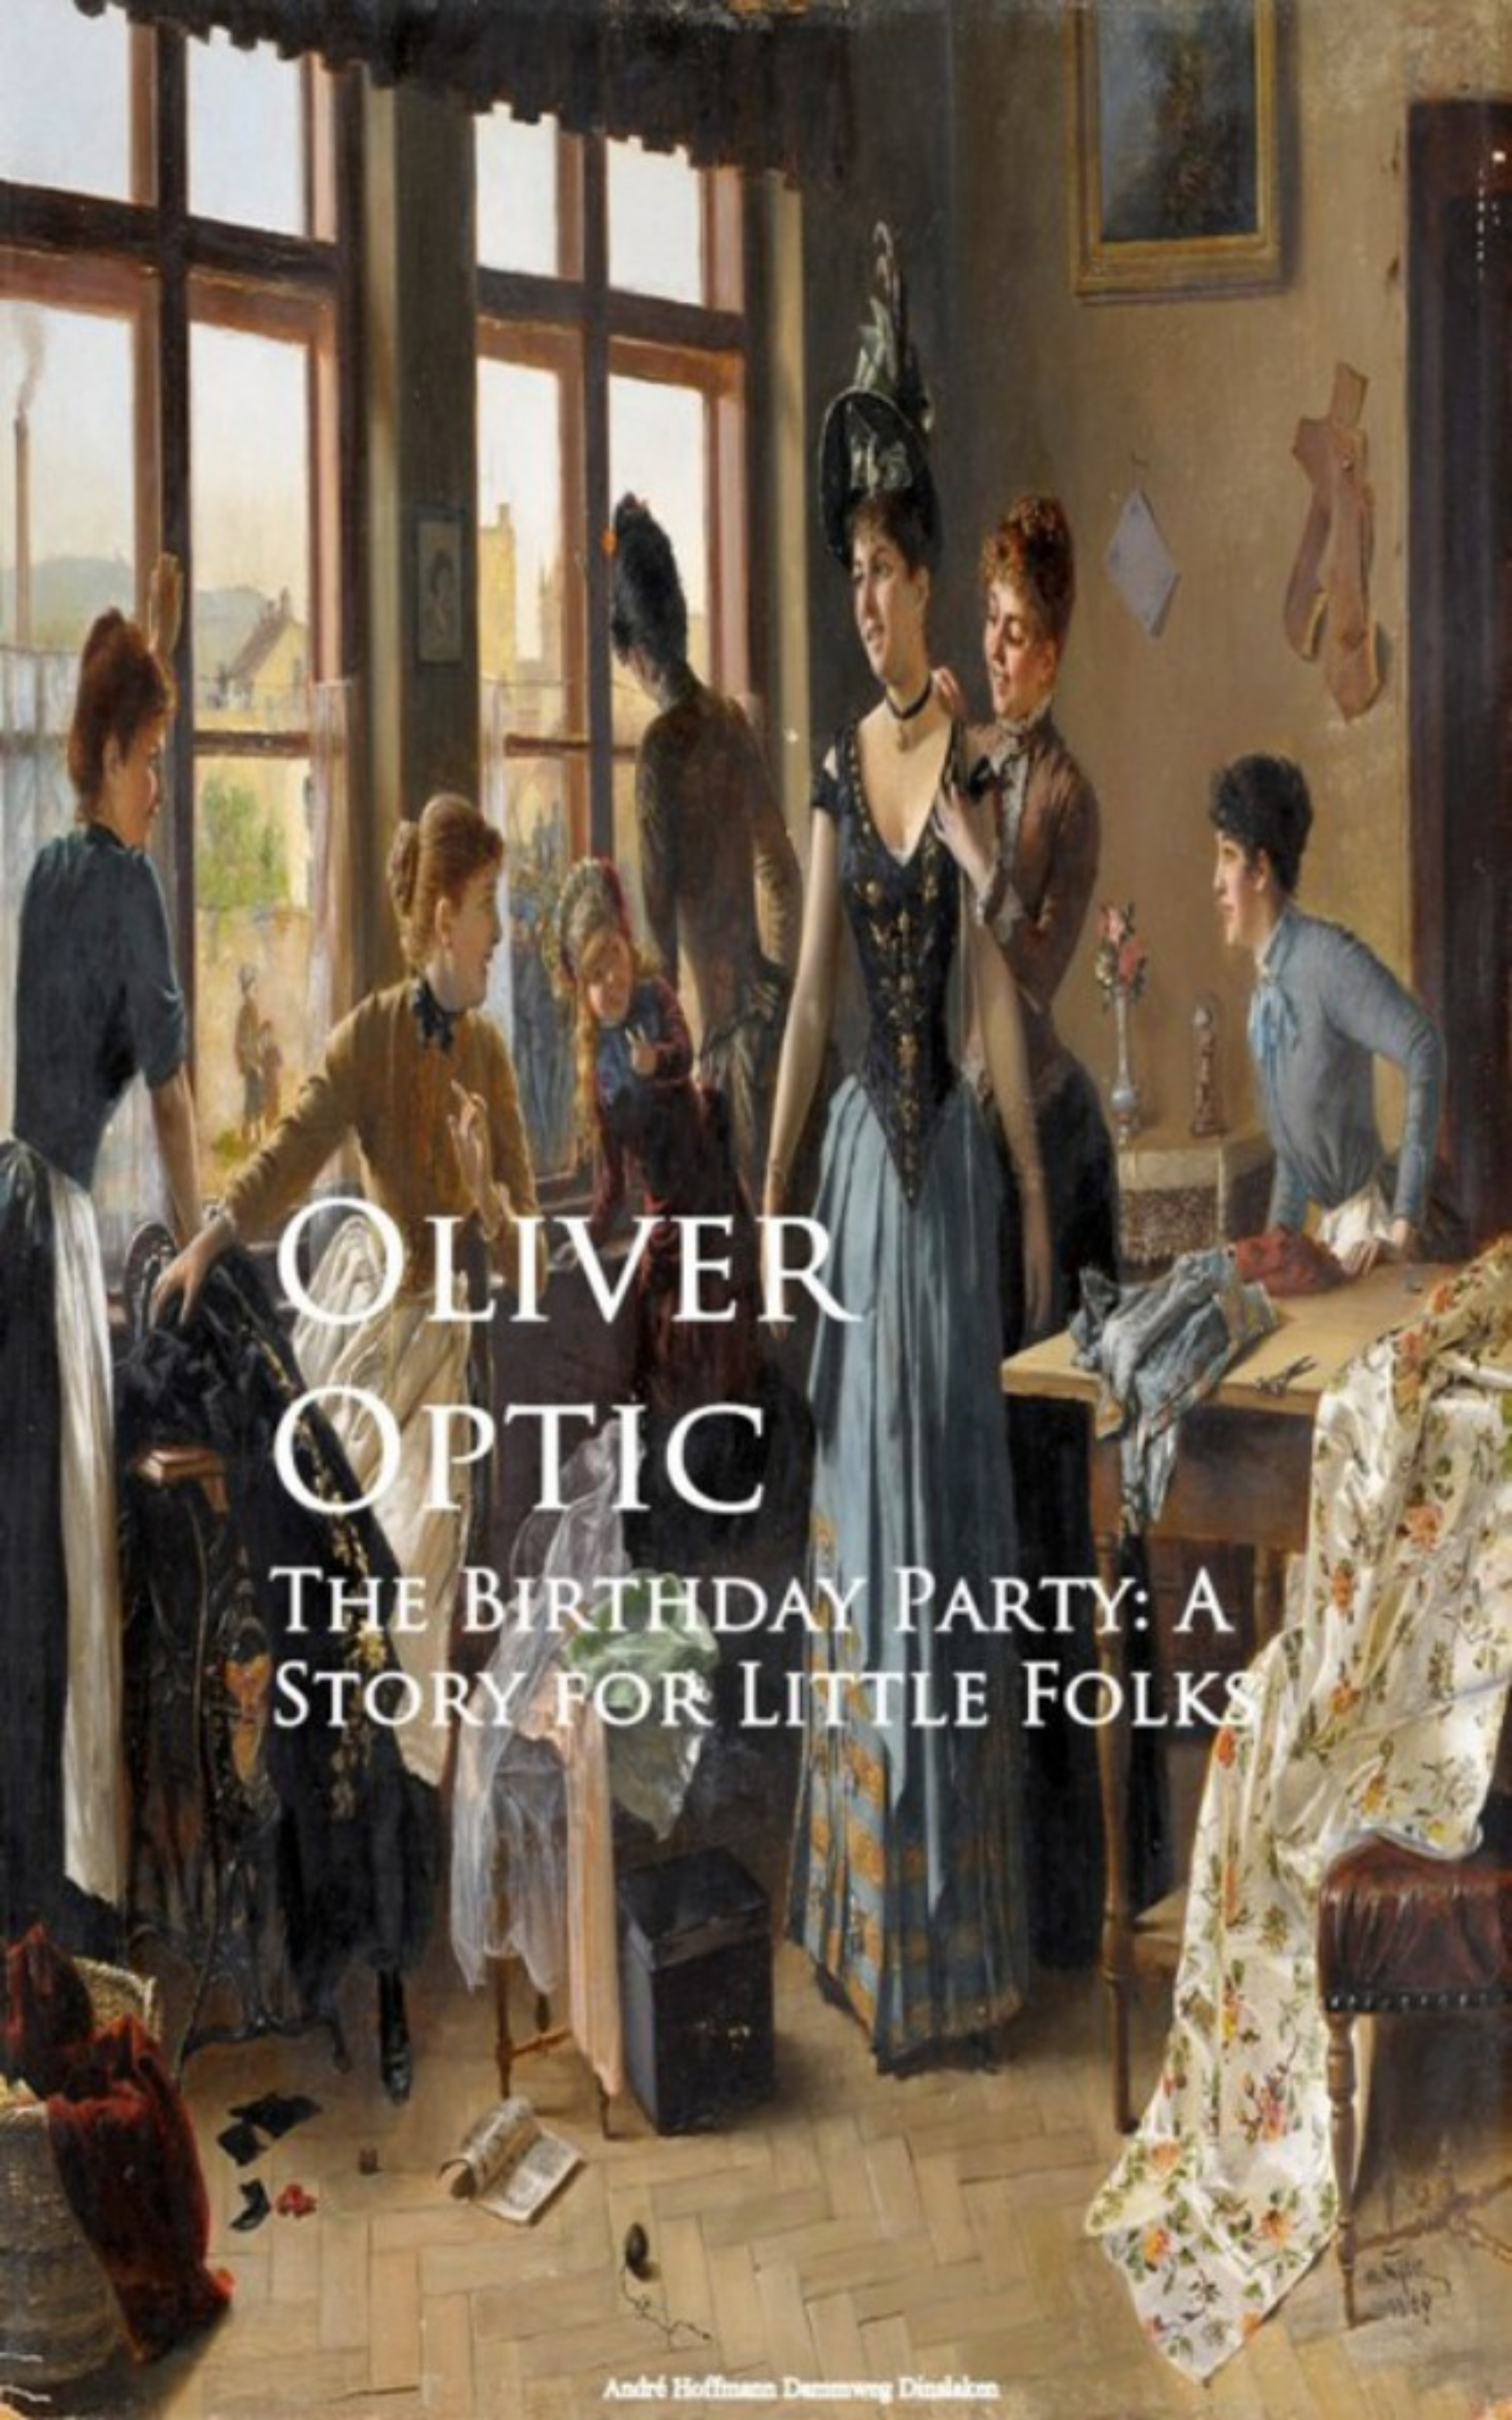 Oliver Optic The Birthday Party: A Story for Little Folks unknown little scenes for little folks